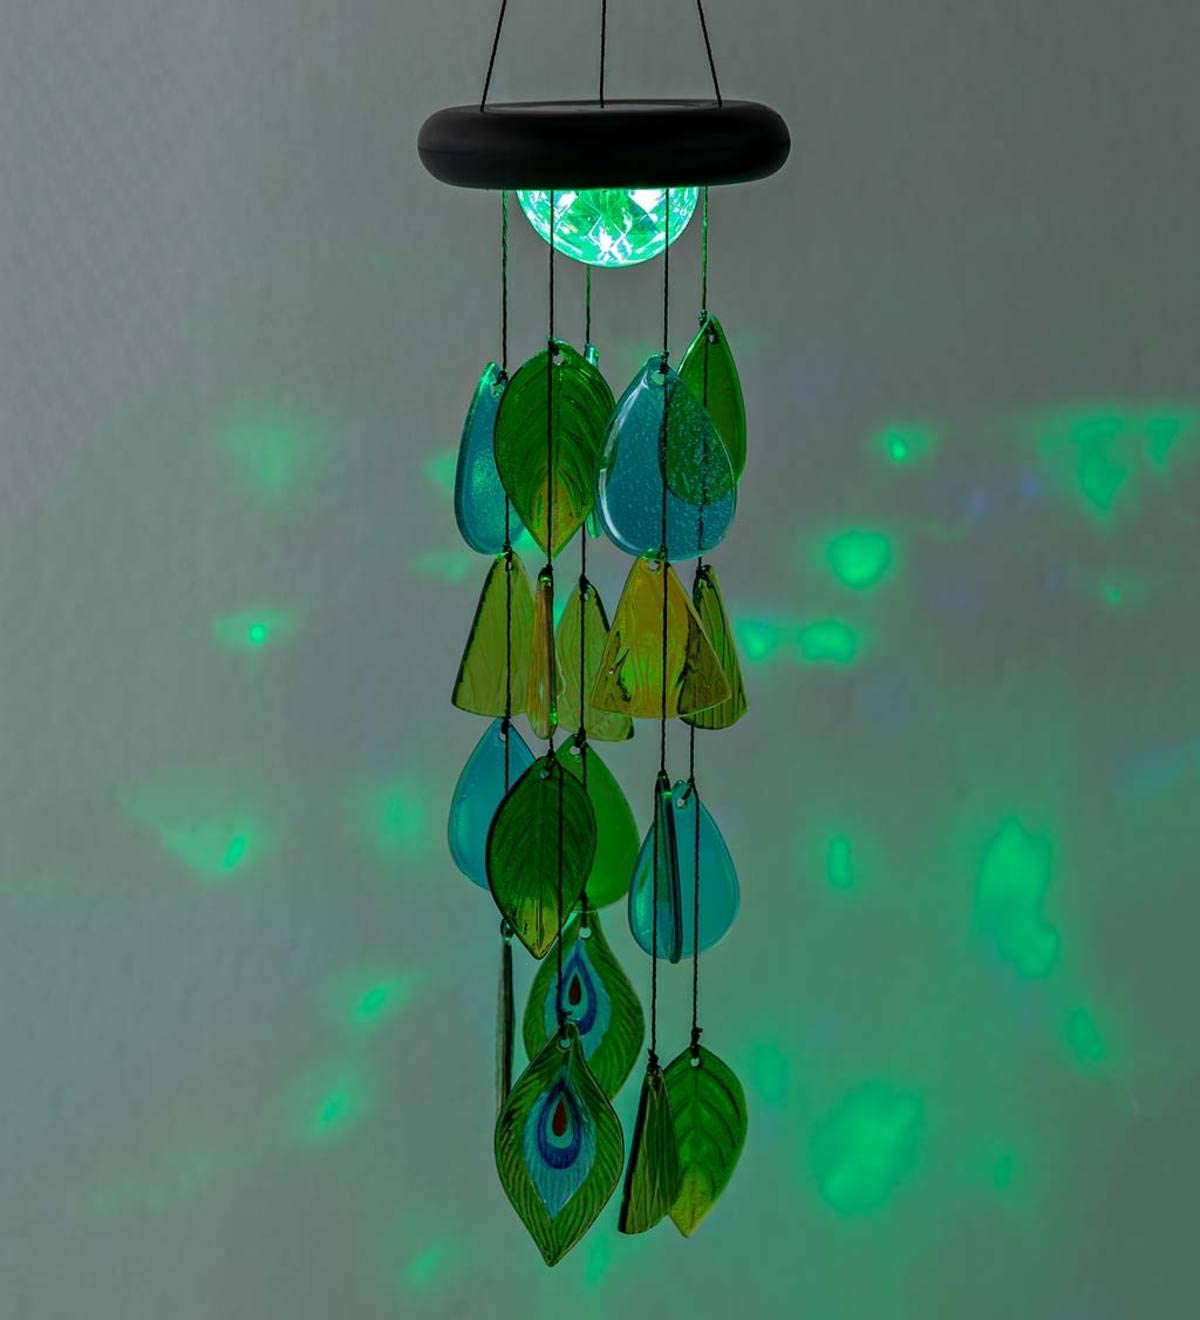 Solar Lighted Glass Leaves Wind Chime Mobile 7.5 Dia x 26.5 H